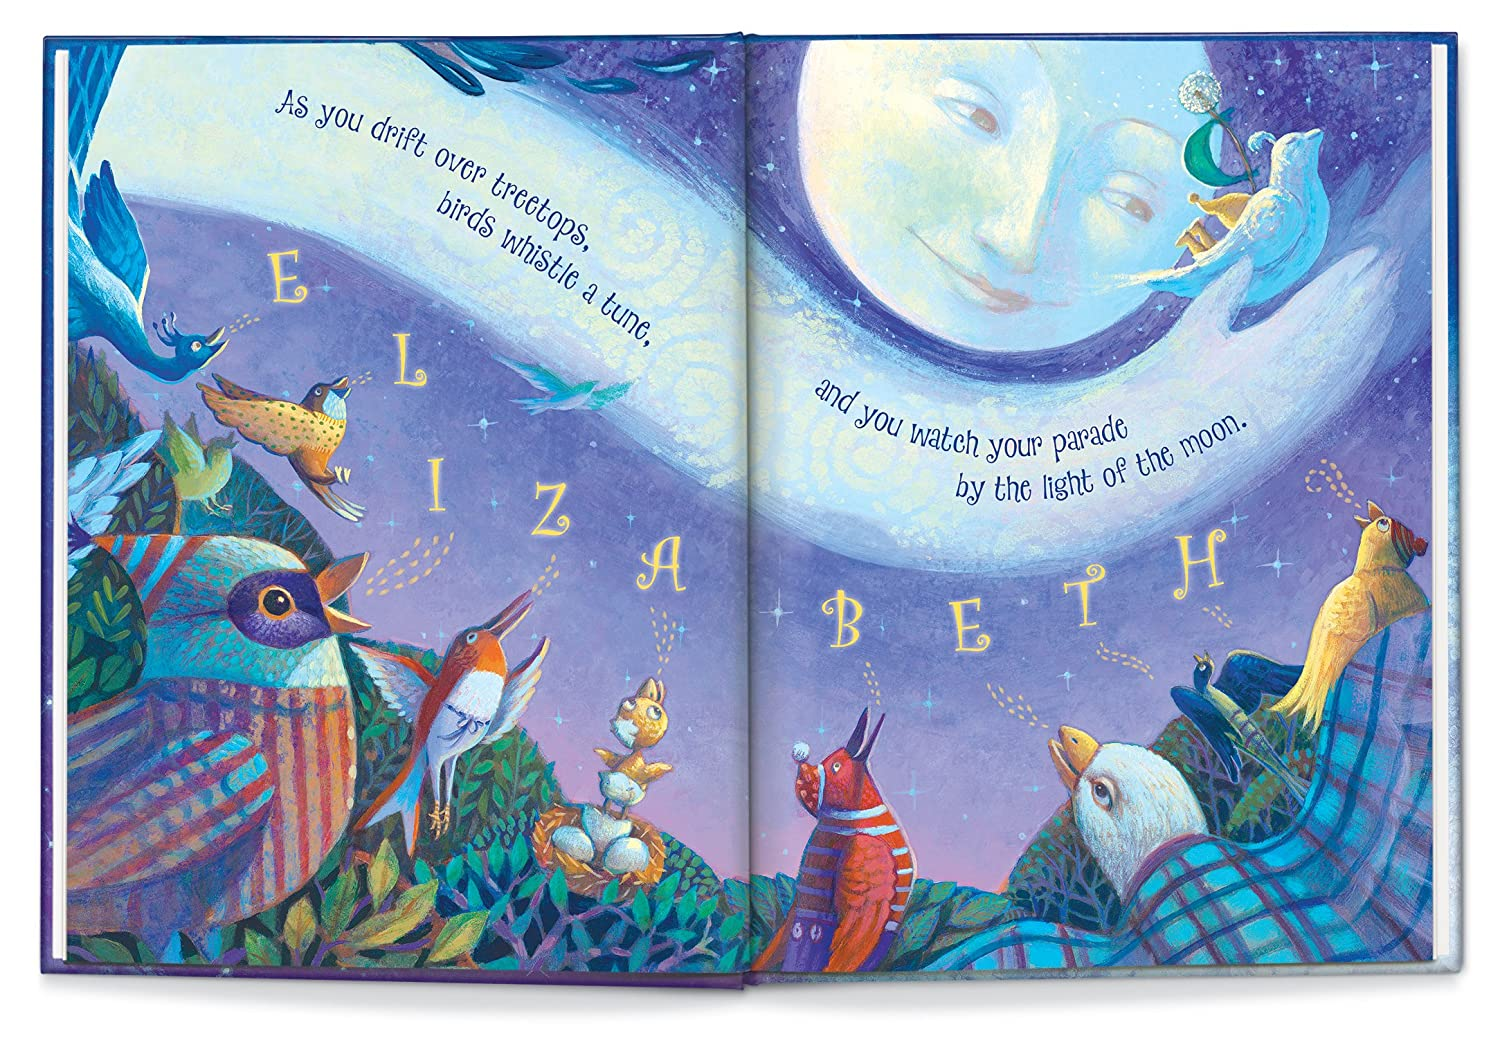 Amazon.com : Goodnight Little Me Personalized Storybook: I See Me ...